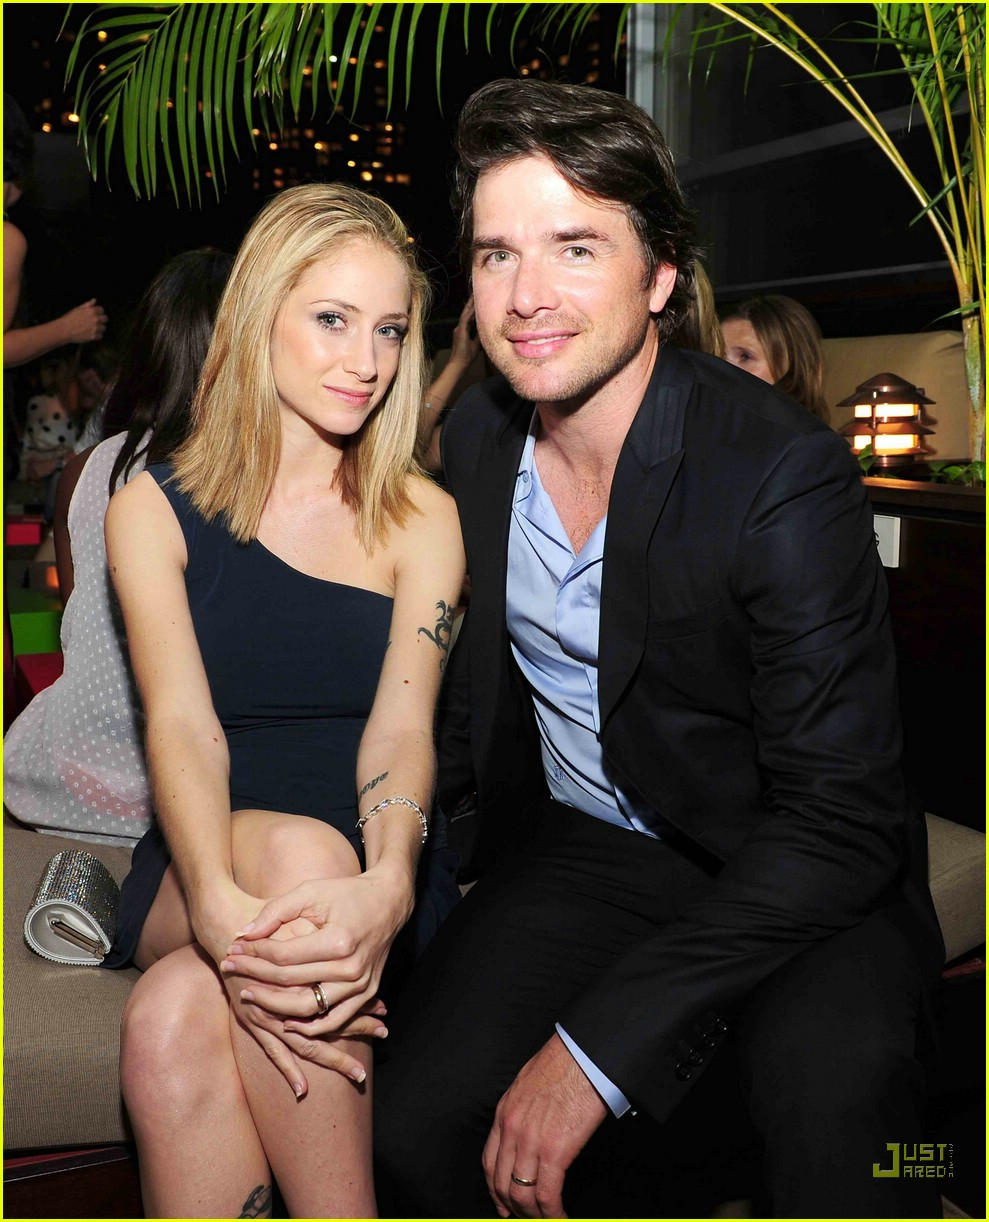 Kelly Rutherford And Matthew Settle Kissing